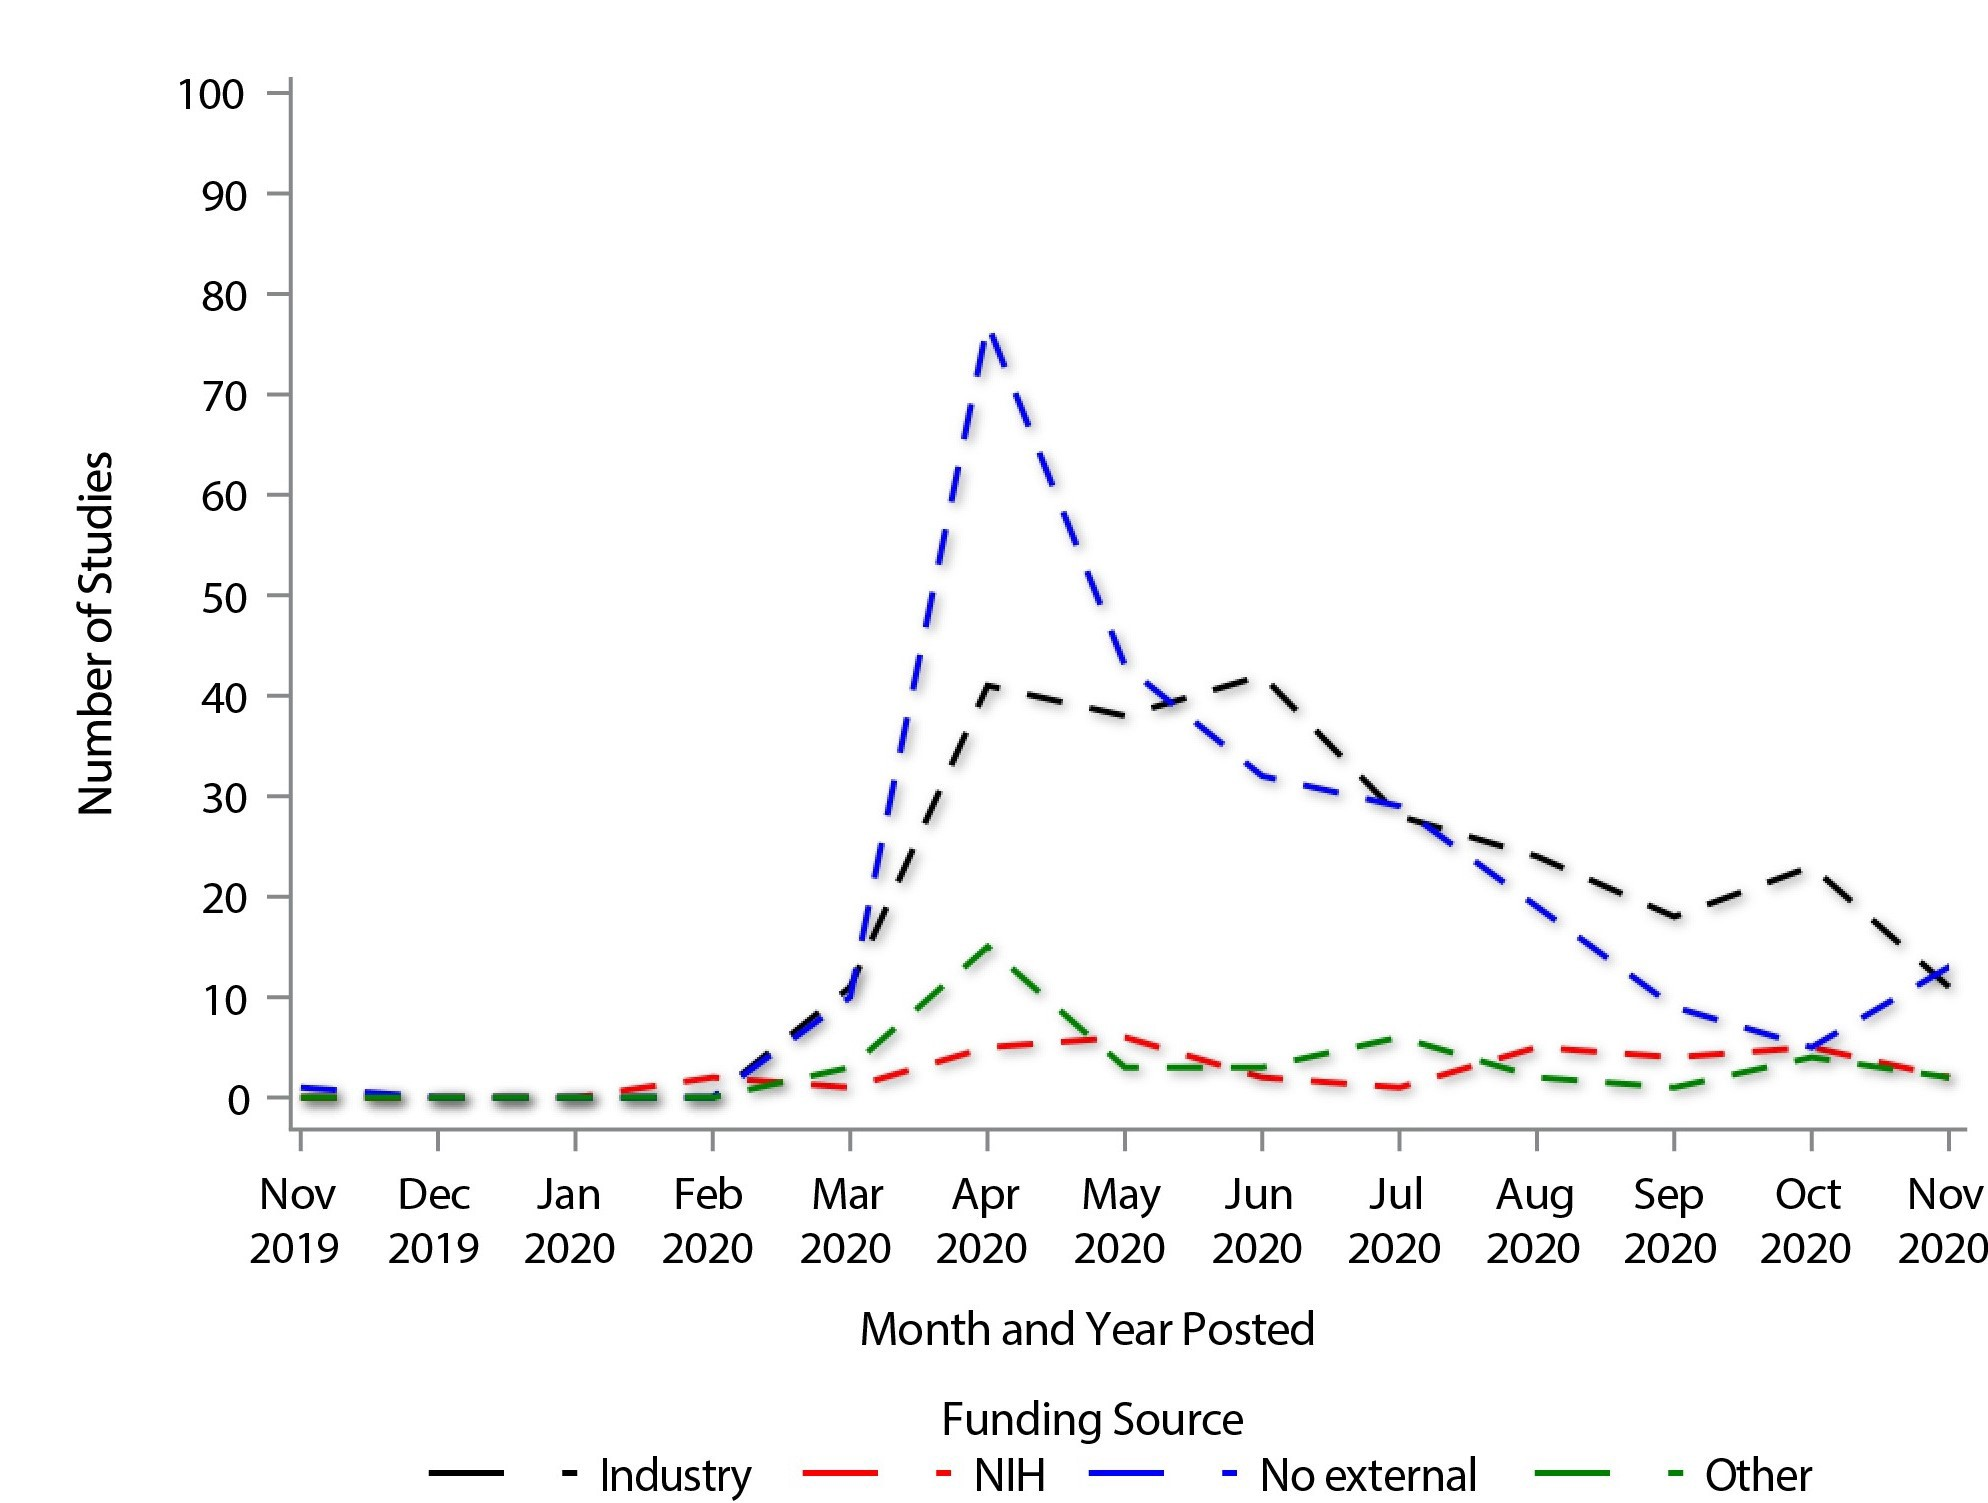 Chart showing the Number of COVID-19 Studies Posted at ClinicalTrials.gov, by Funder Type